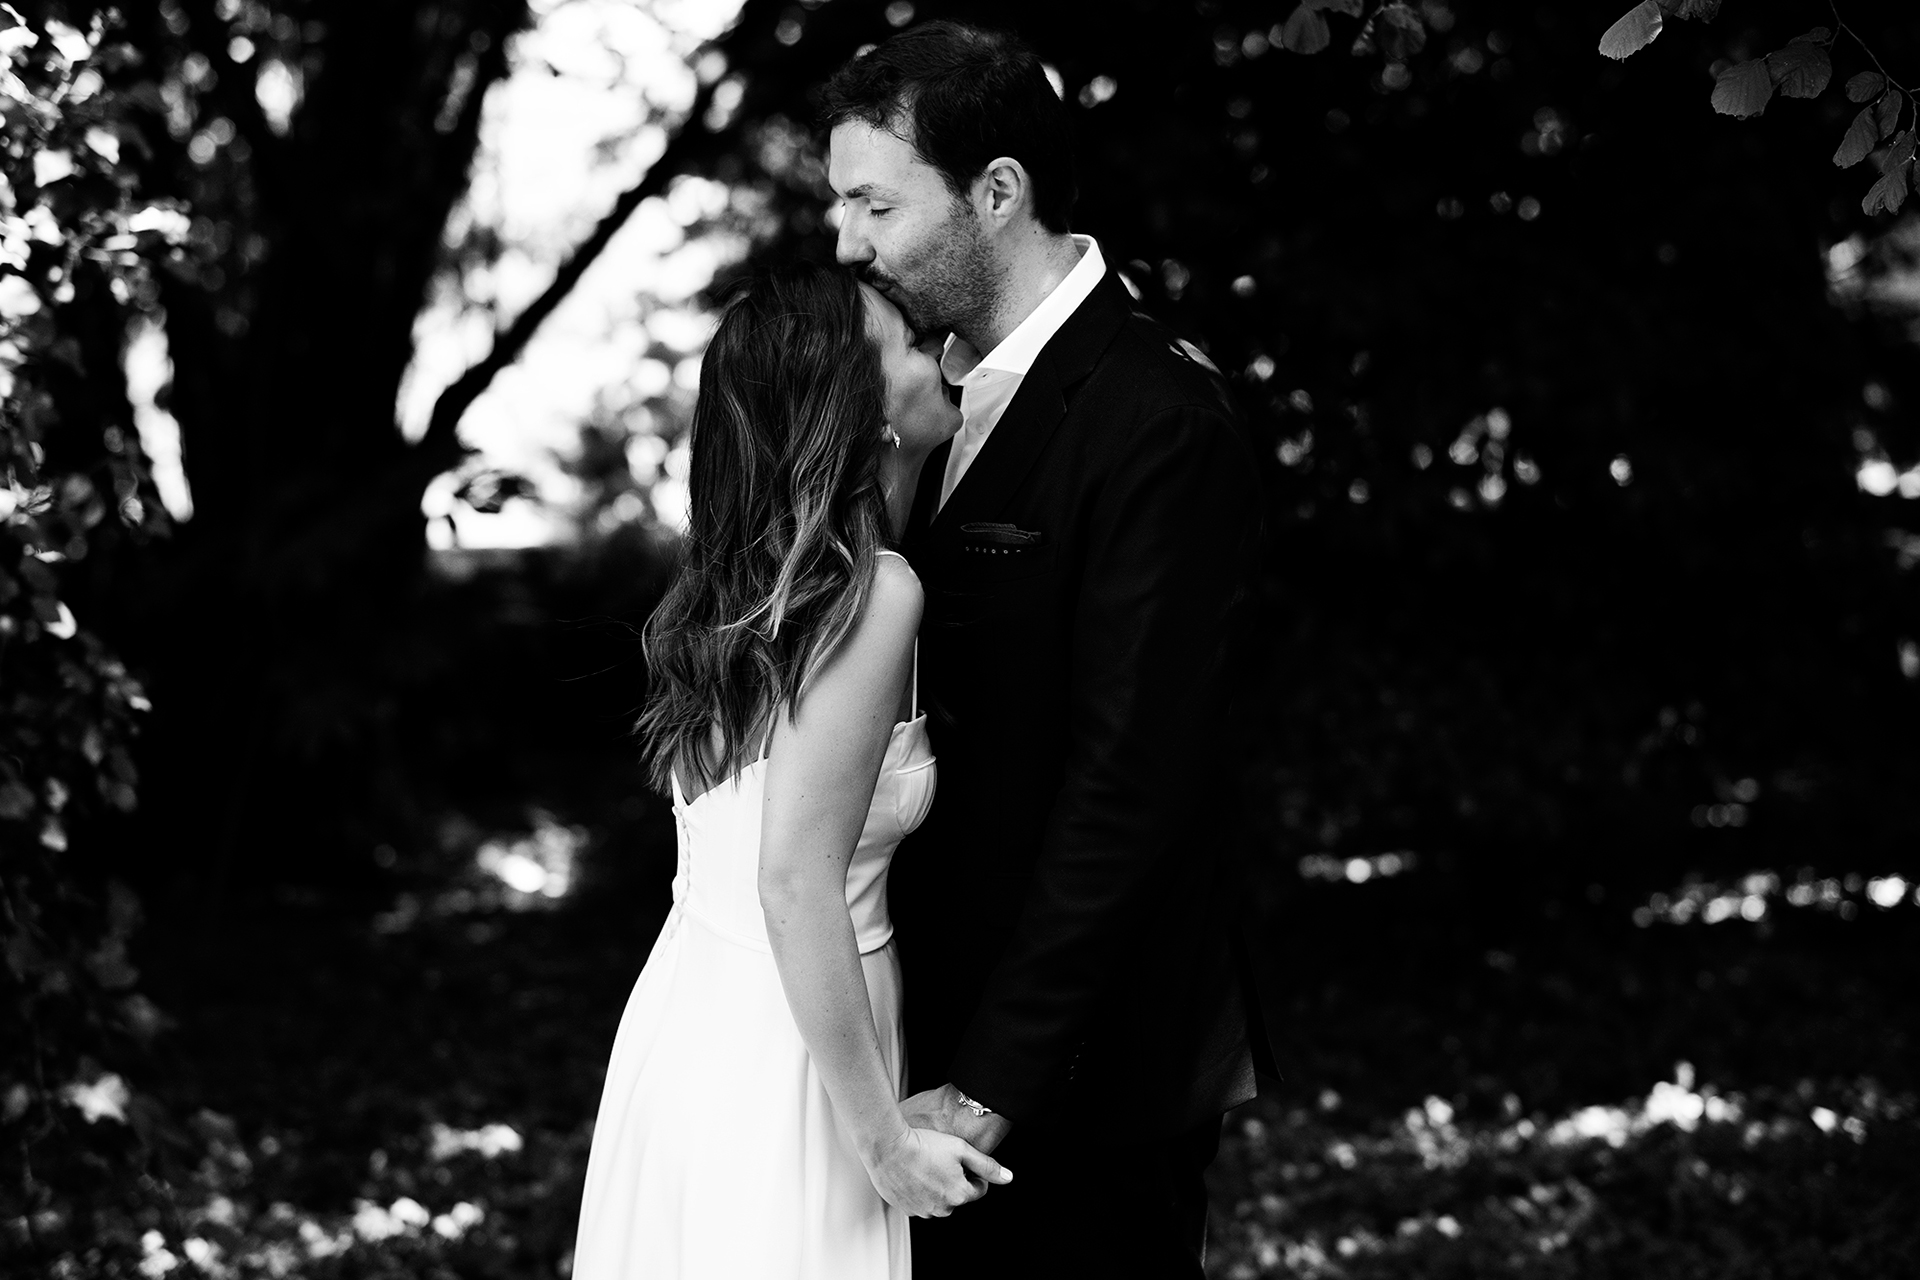 Backyard Wedding Image - Portugal Elopements | The groom spontaneously kisses the bride on the forehead